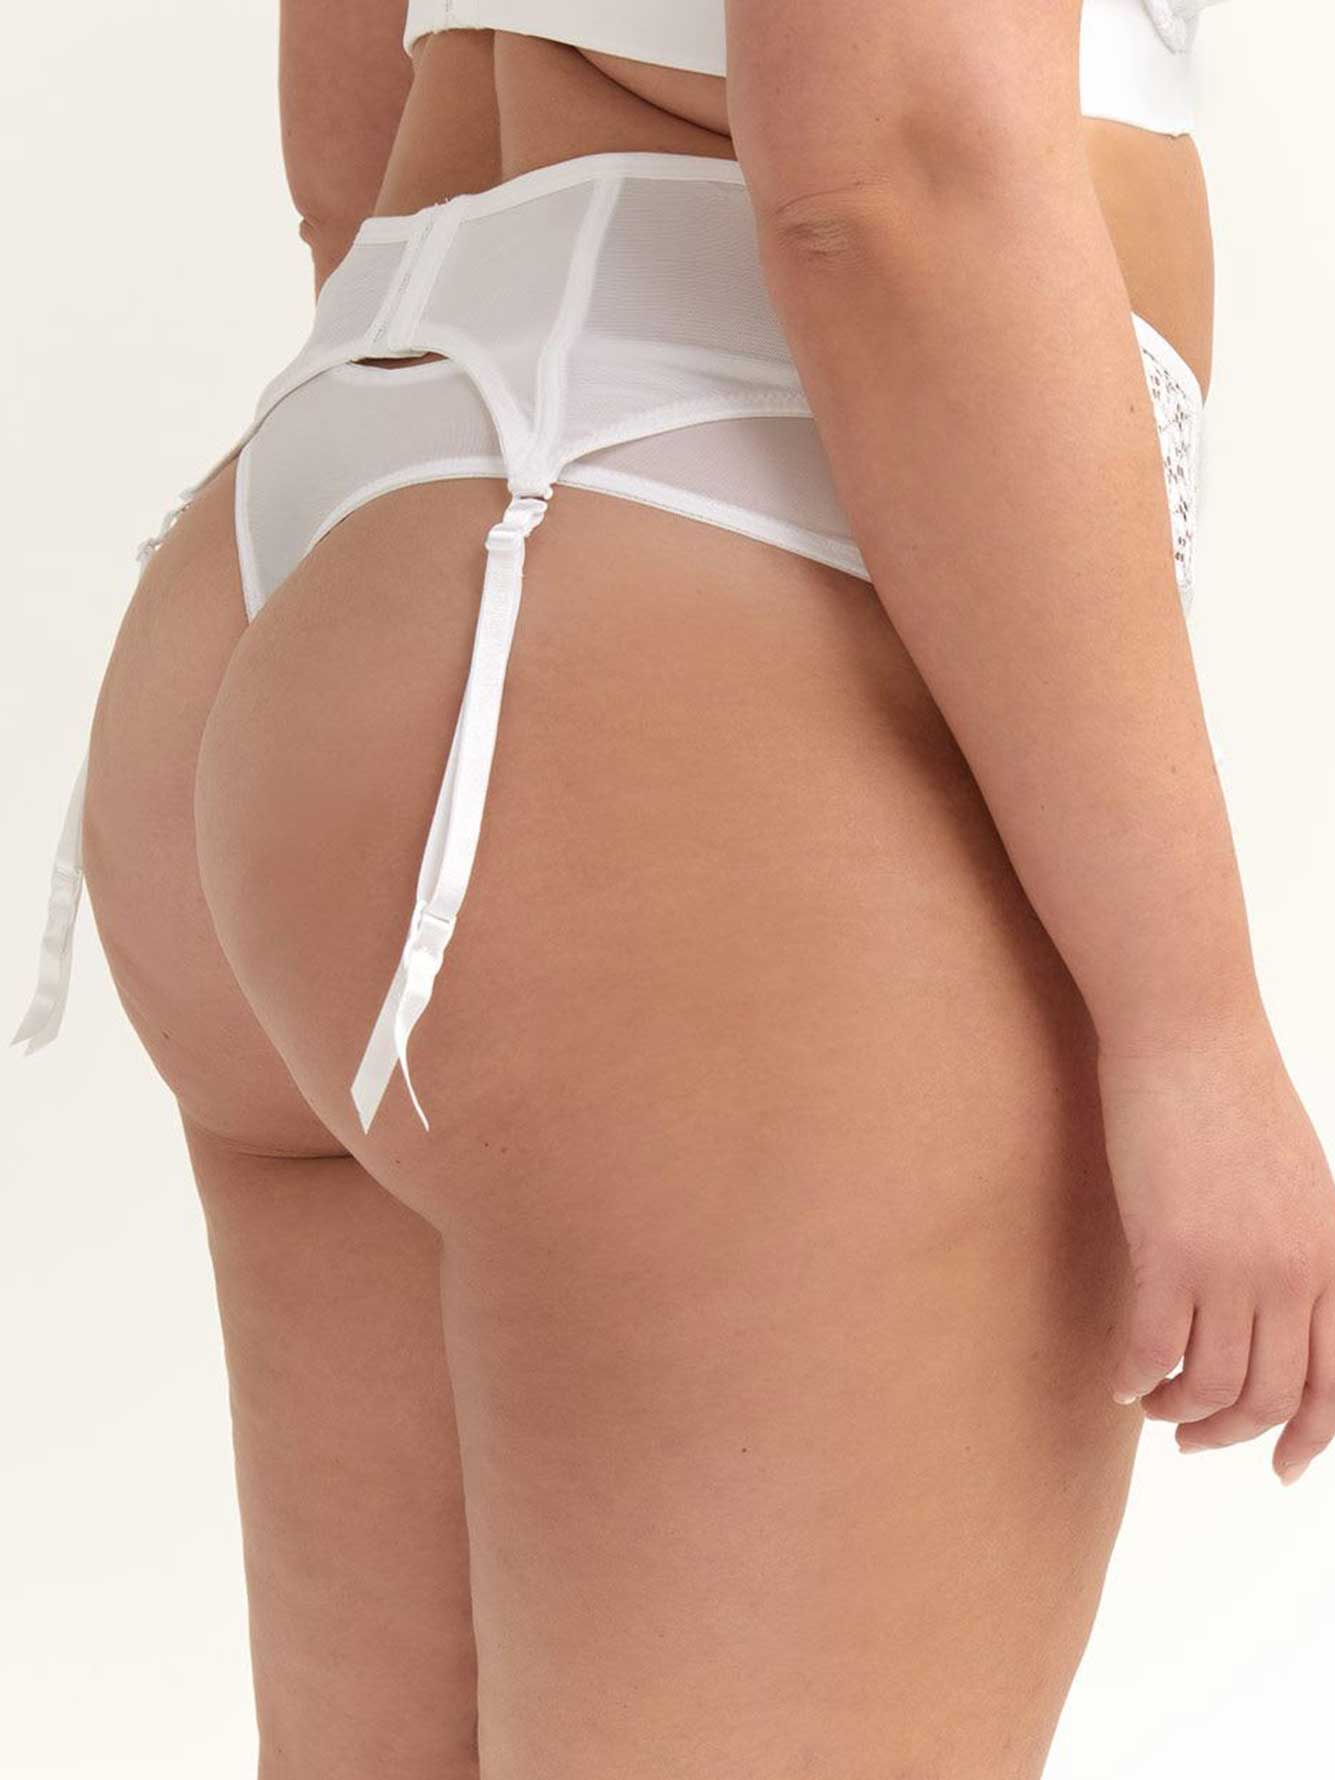 Garter Belt with Lace Up Detail - Ashley Graham